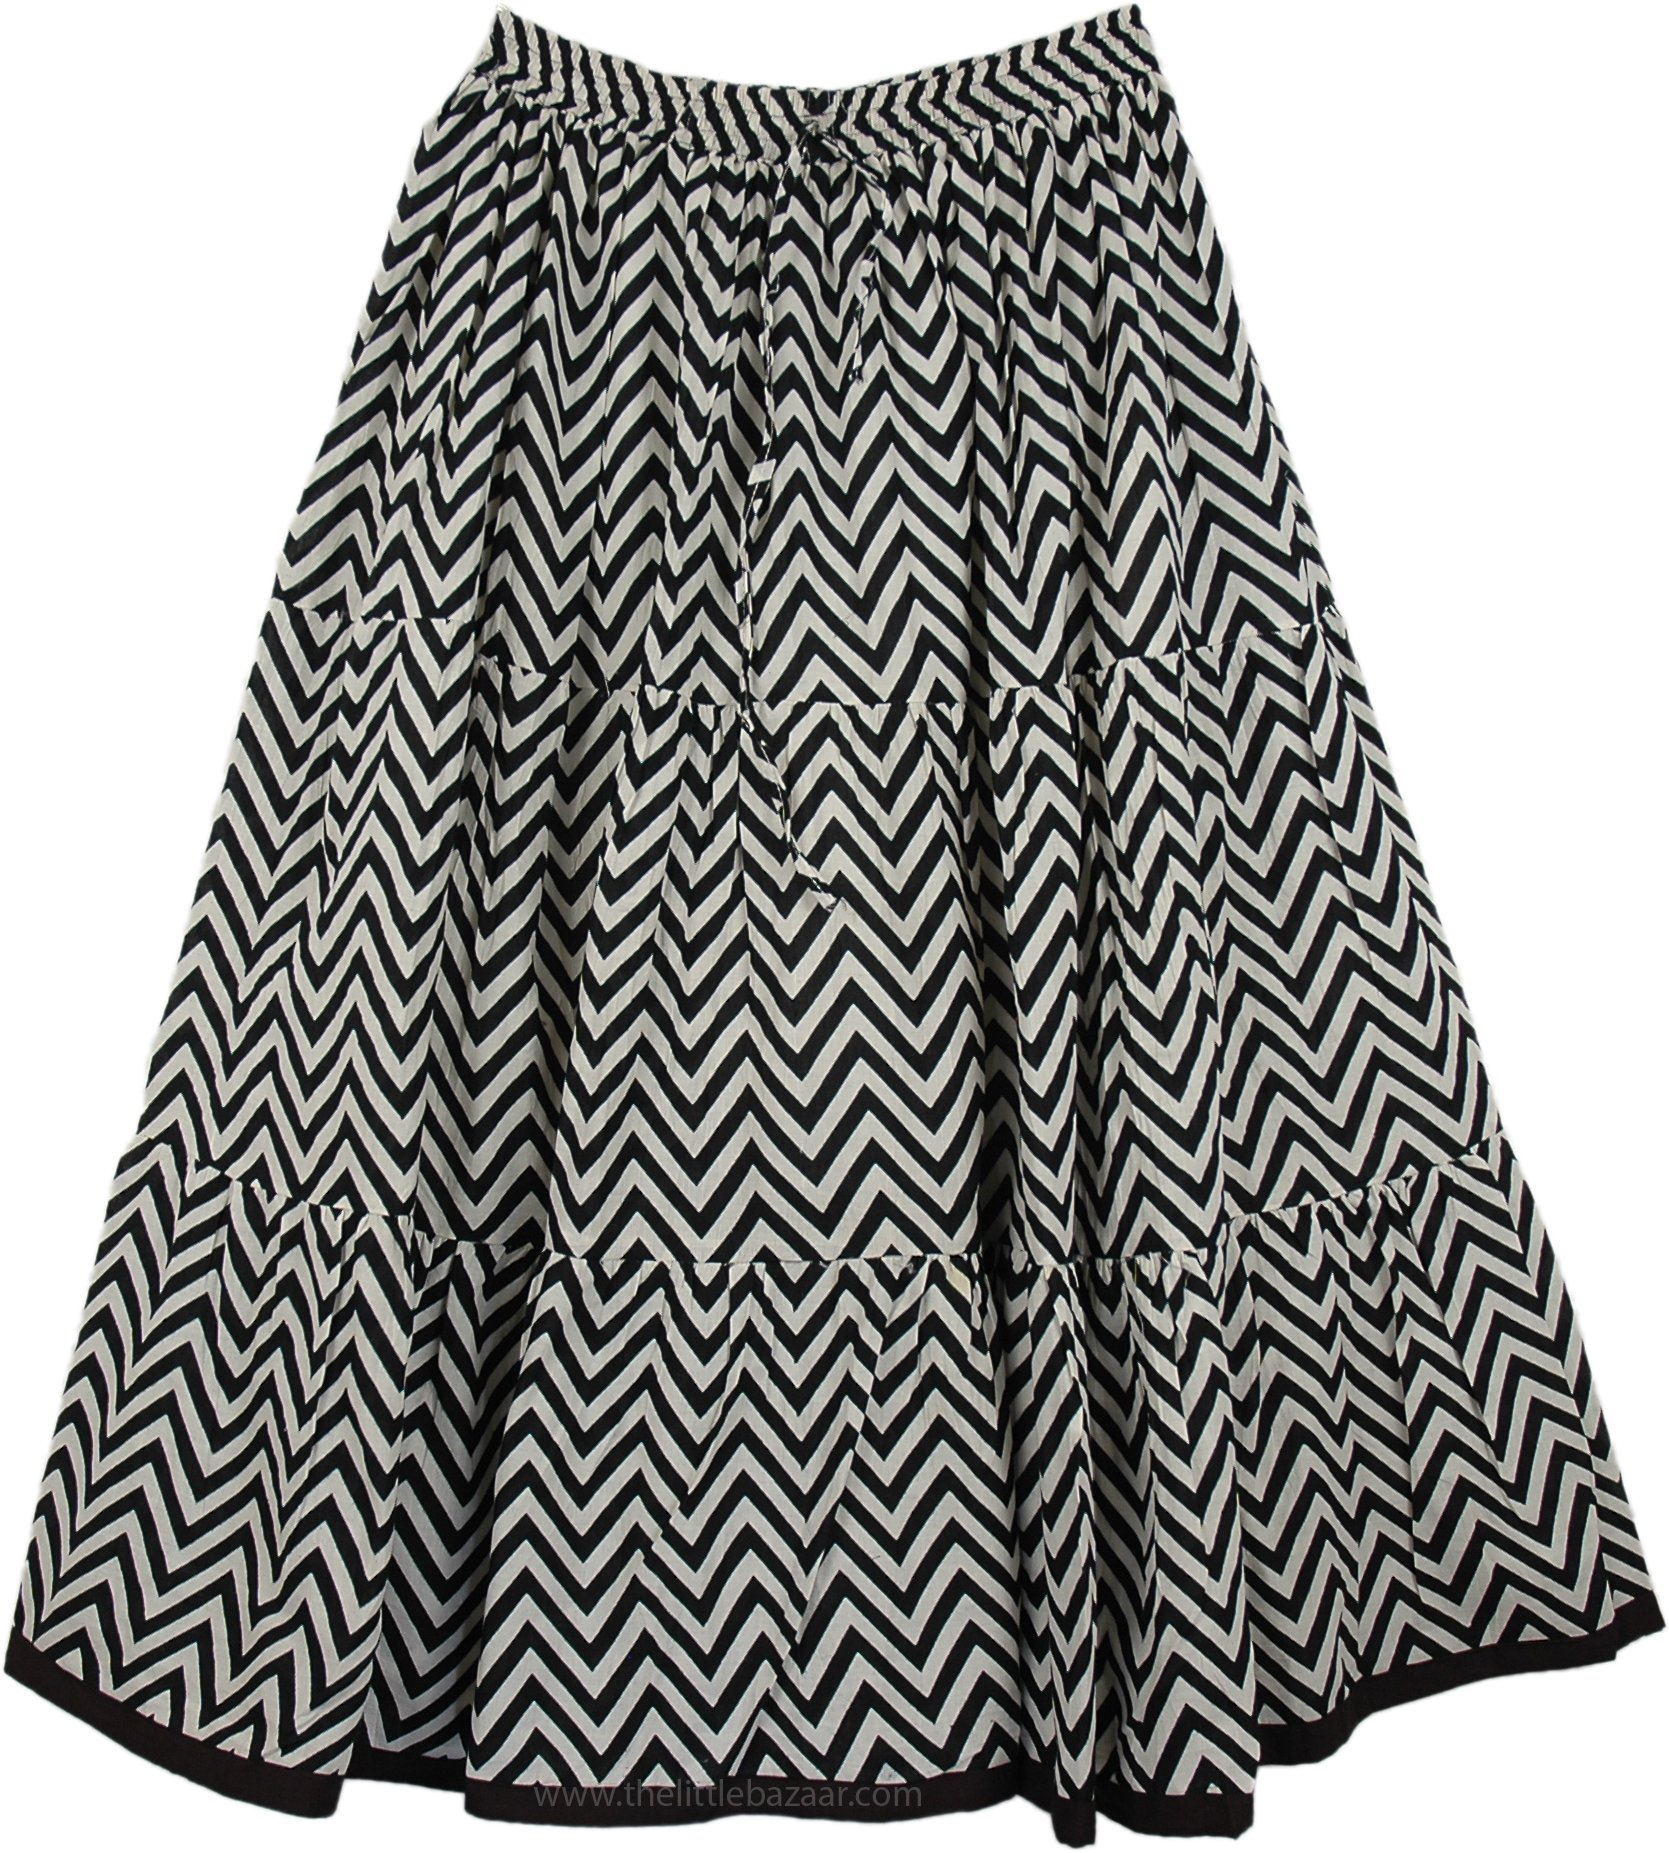 TLB Mid Length Black White Skirt in Printed Cotton - L:30''; W:24''-34''